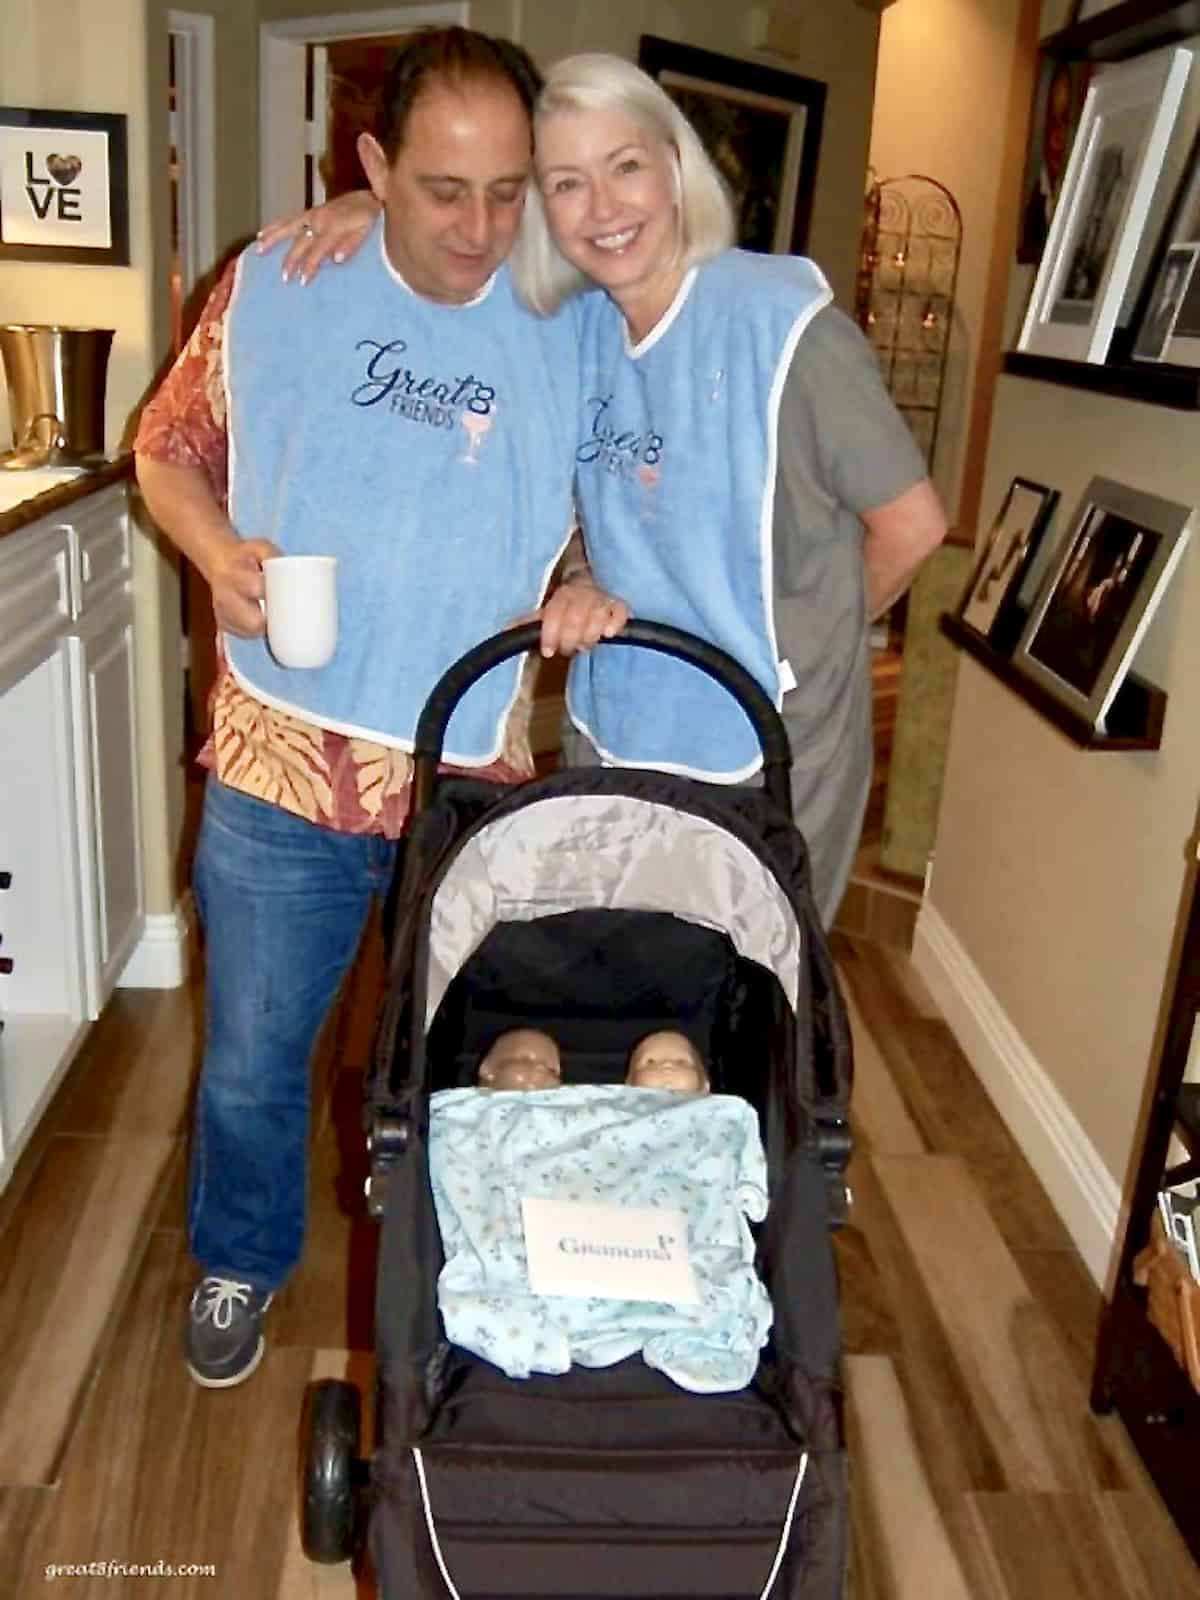 A man and a woman standing behind a black stroller with two baby dolls in it covered with a baby blanket.